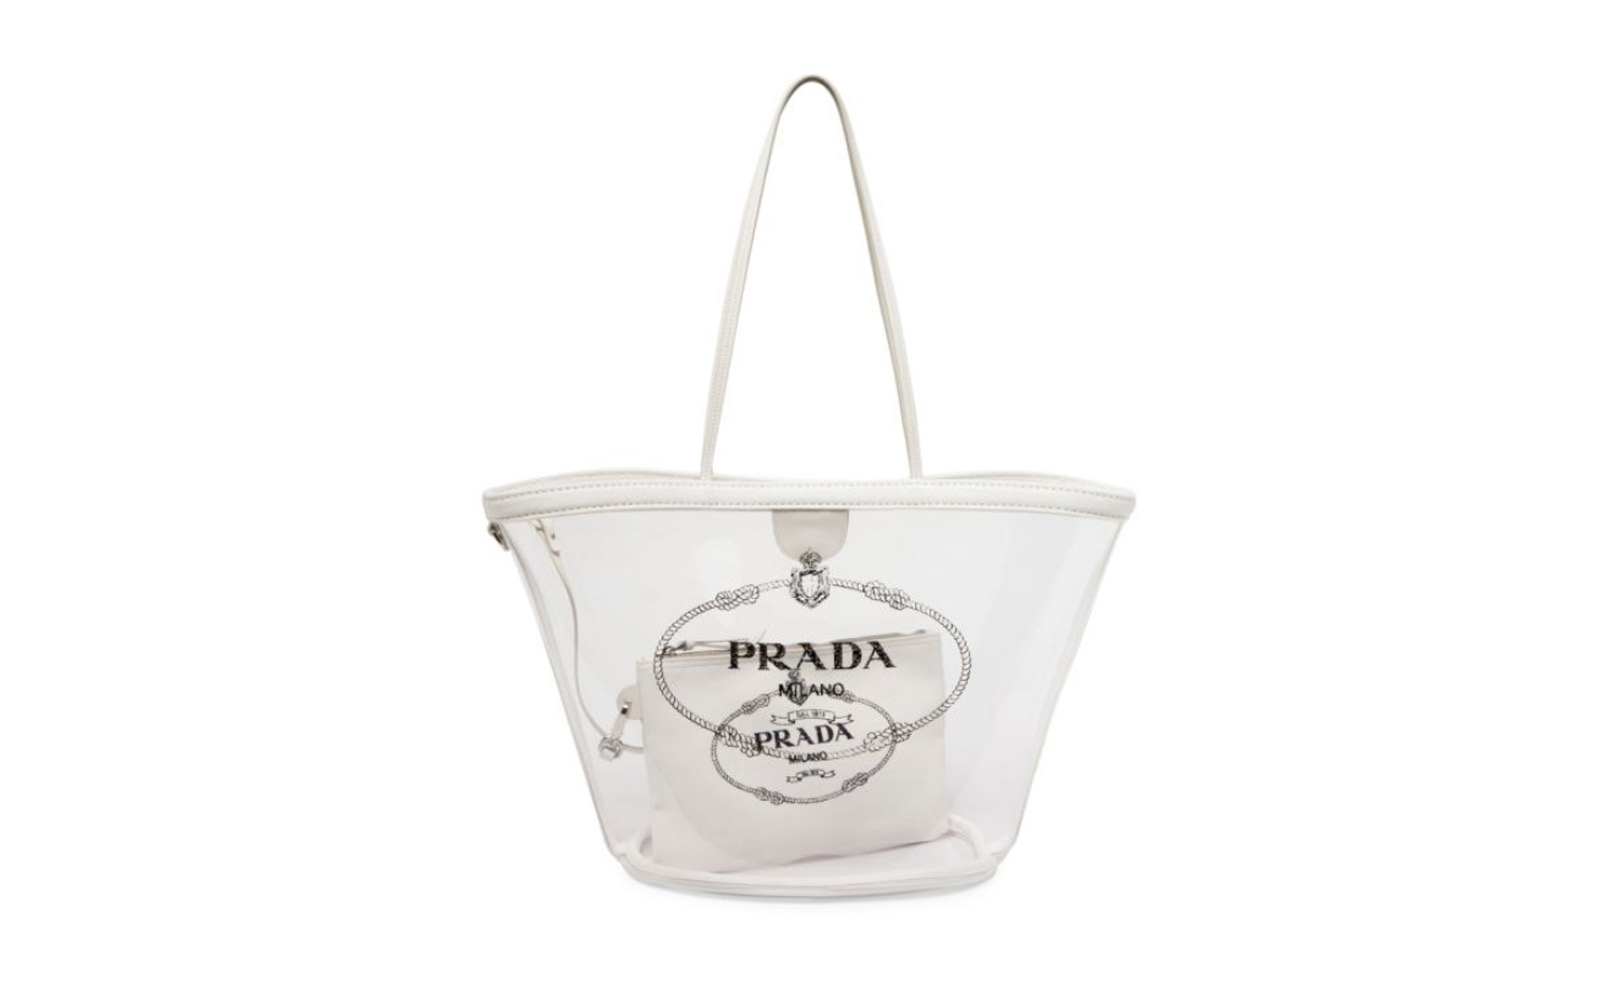 prada clear bag